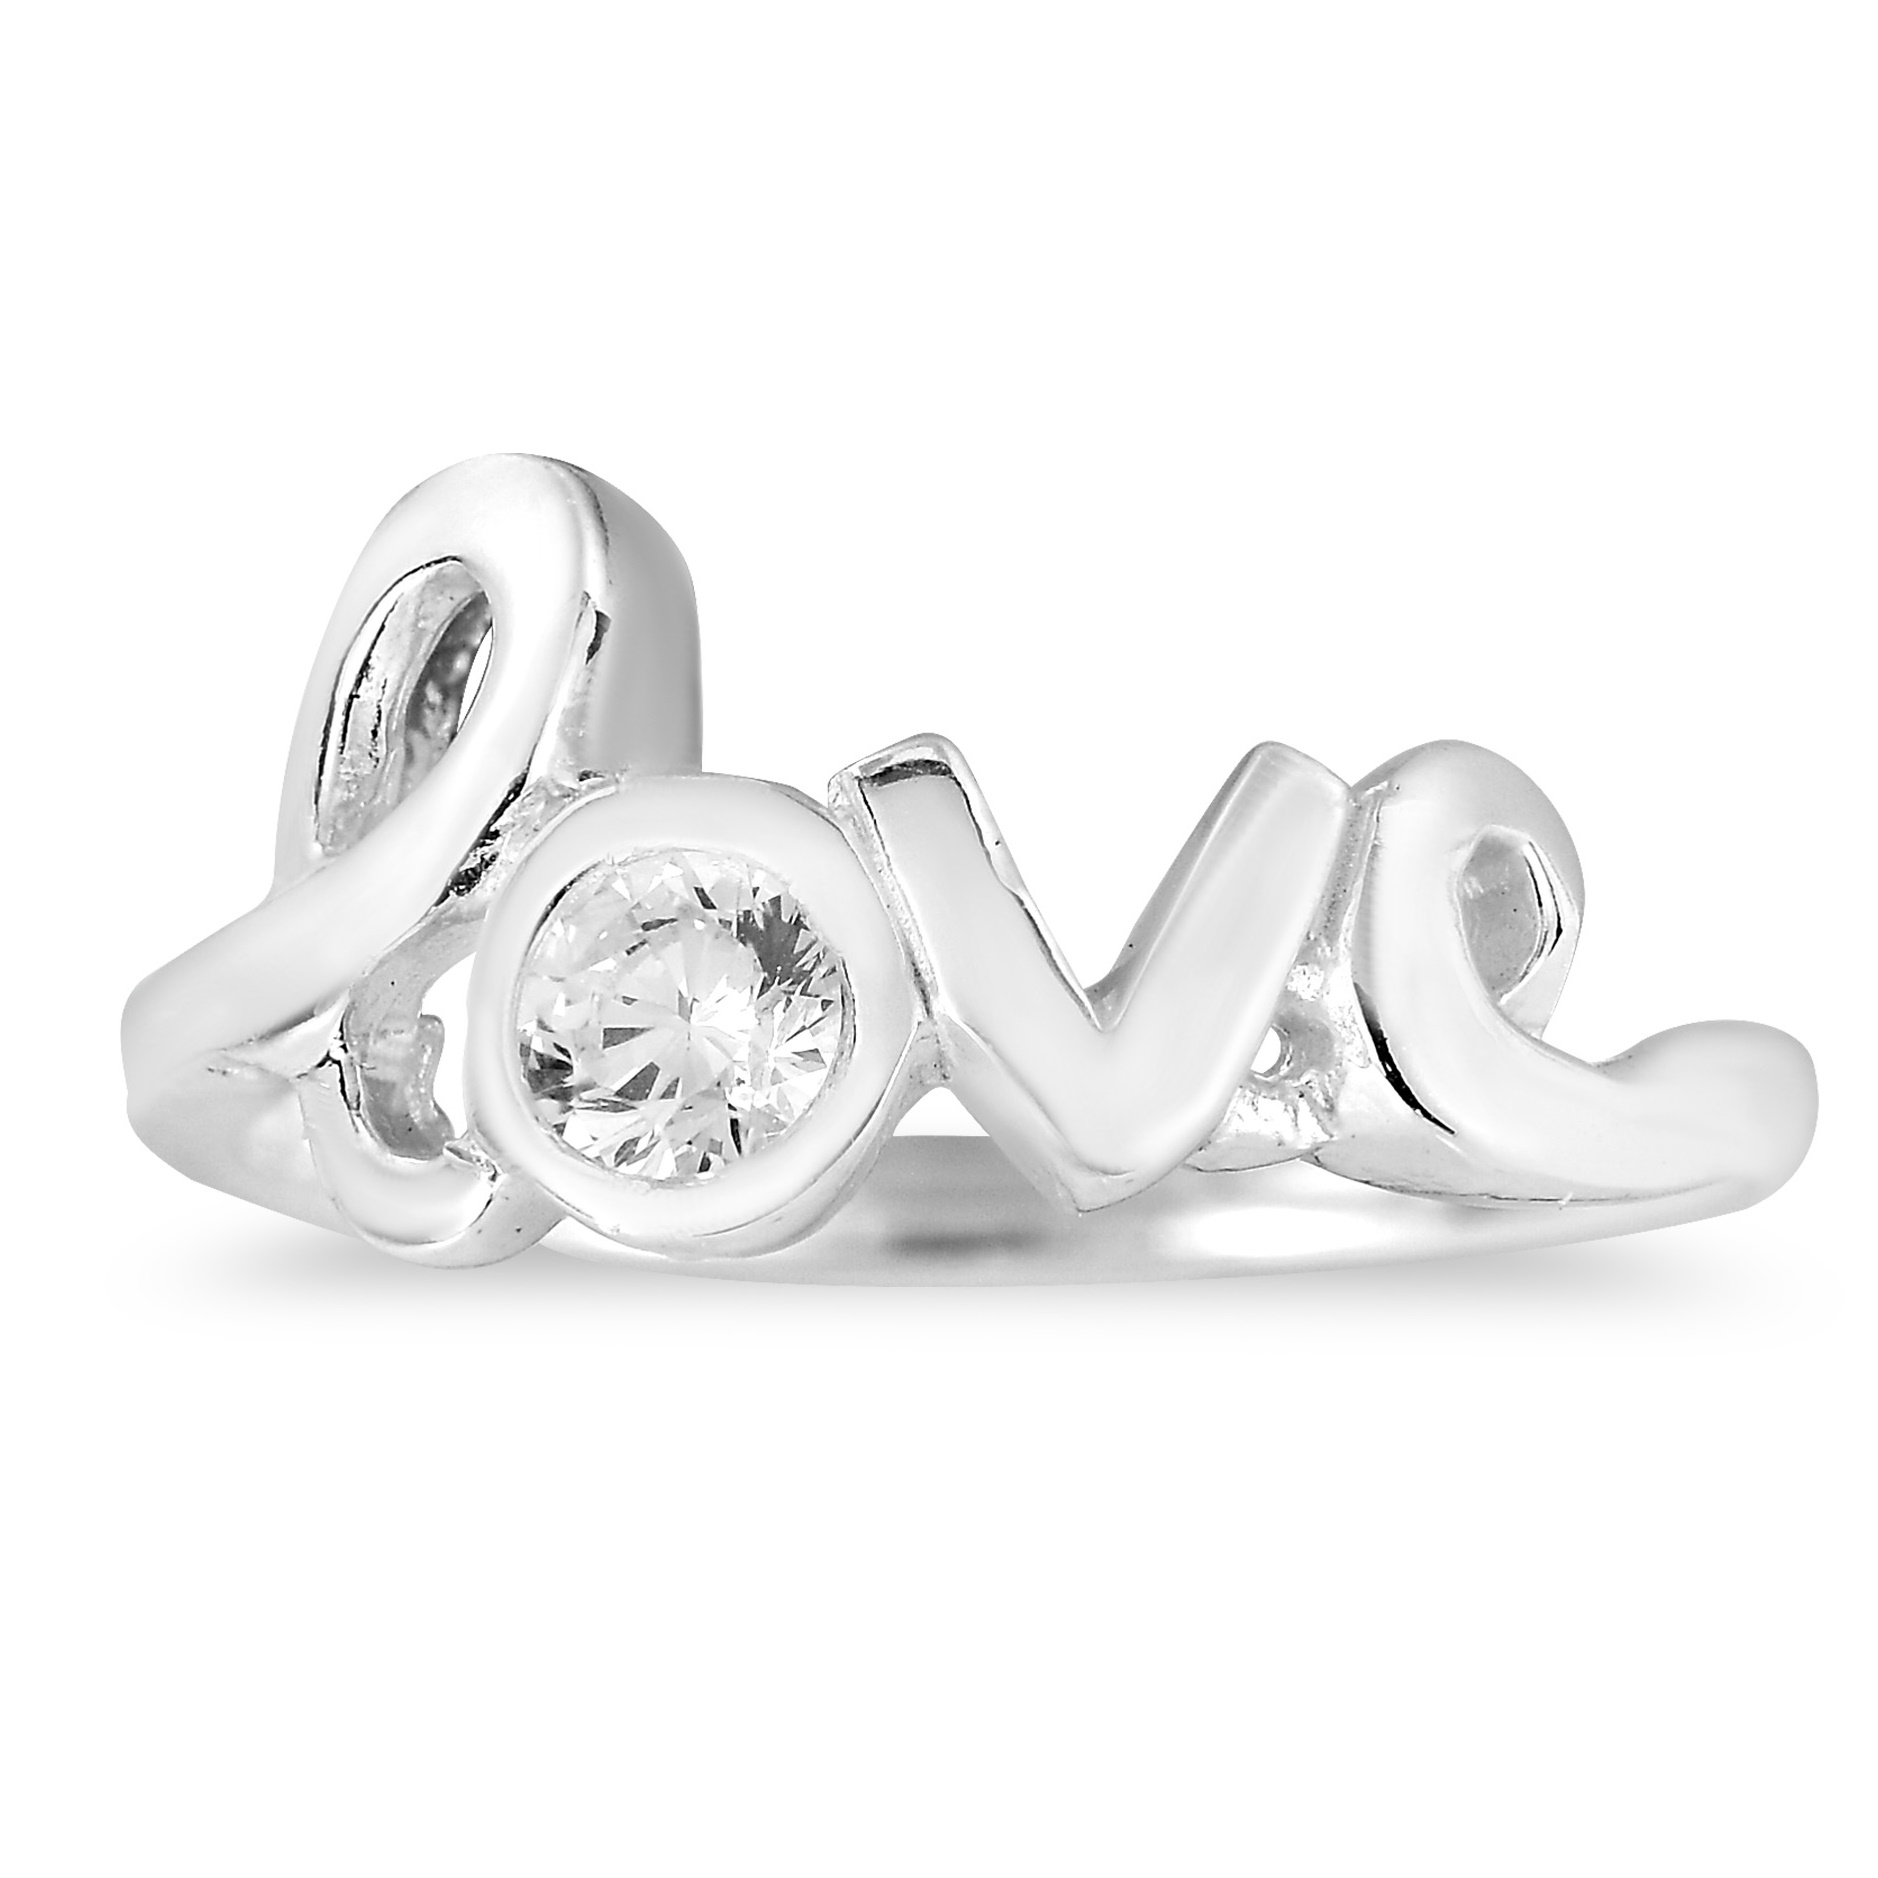 "f45e31c430 This very cute and stylish ""love"" ring is made using the finest sterling  silver. True craftmanship is on display with this intricate handmade design."